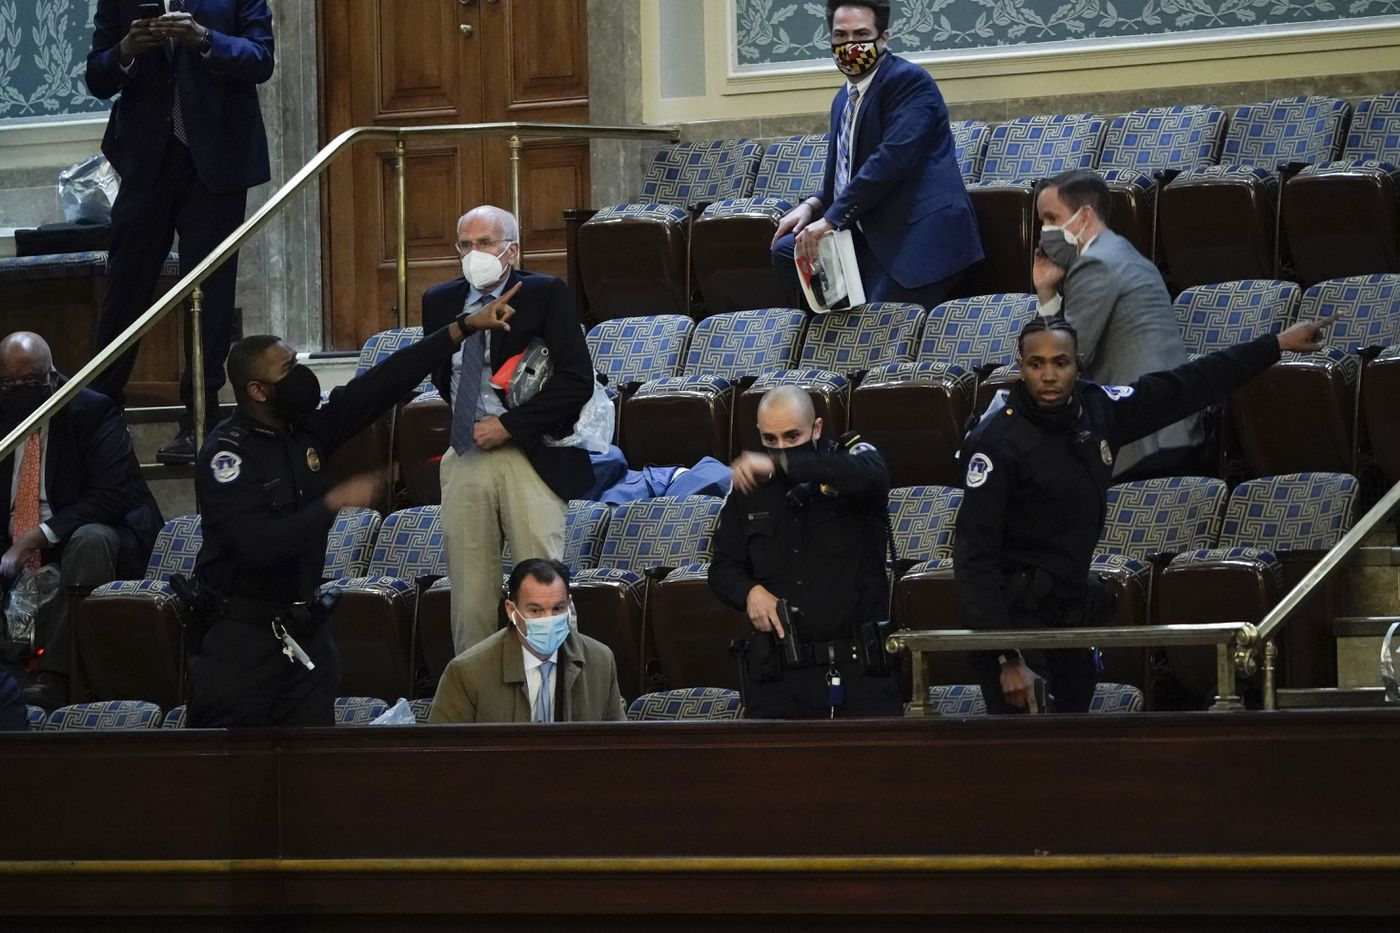 Lawmakers prepare to evacuate the House gallery as protesters try to break into the House Chamber at the U.S. Capitol on Wednesday, Jan. 6, 2021, in Washington. (AP Photo/J. Scott Applewhite)